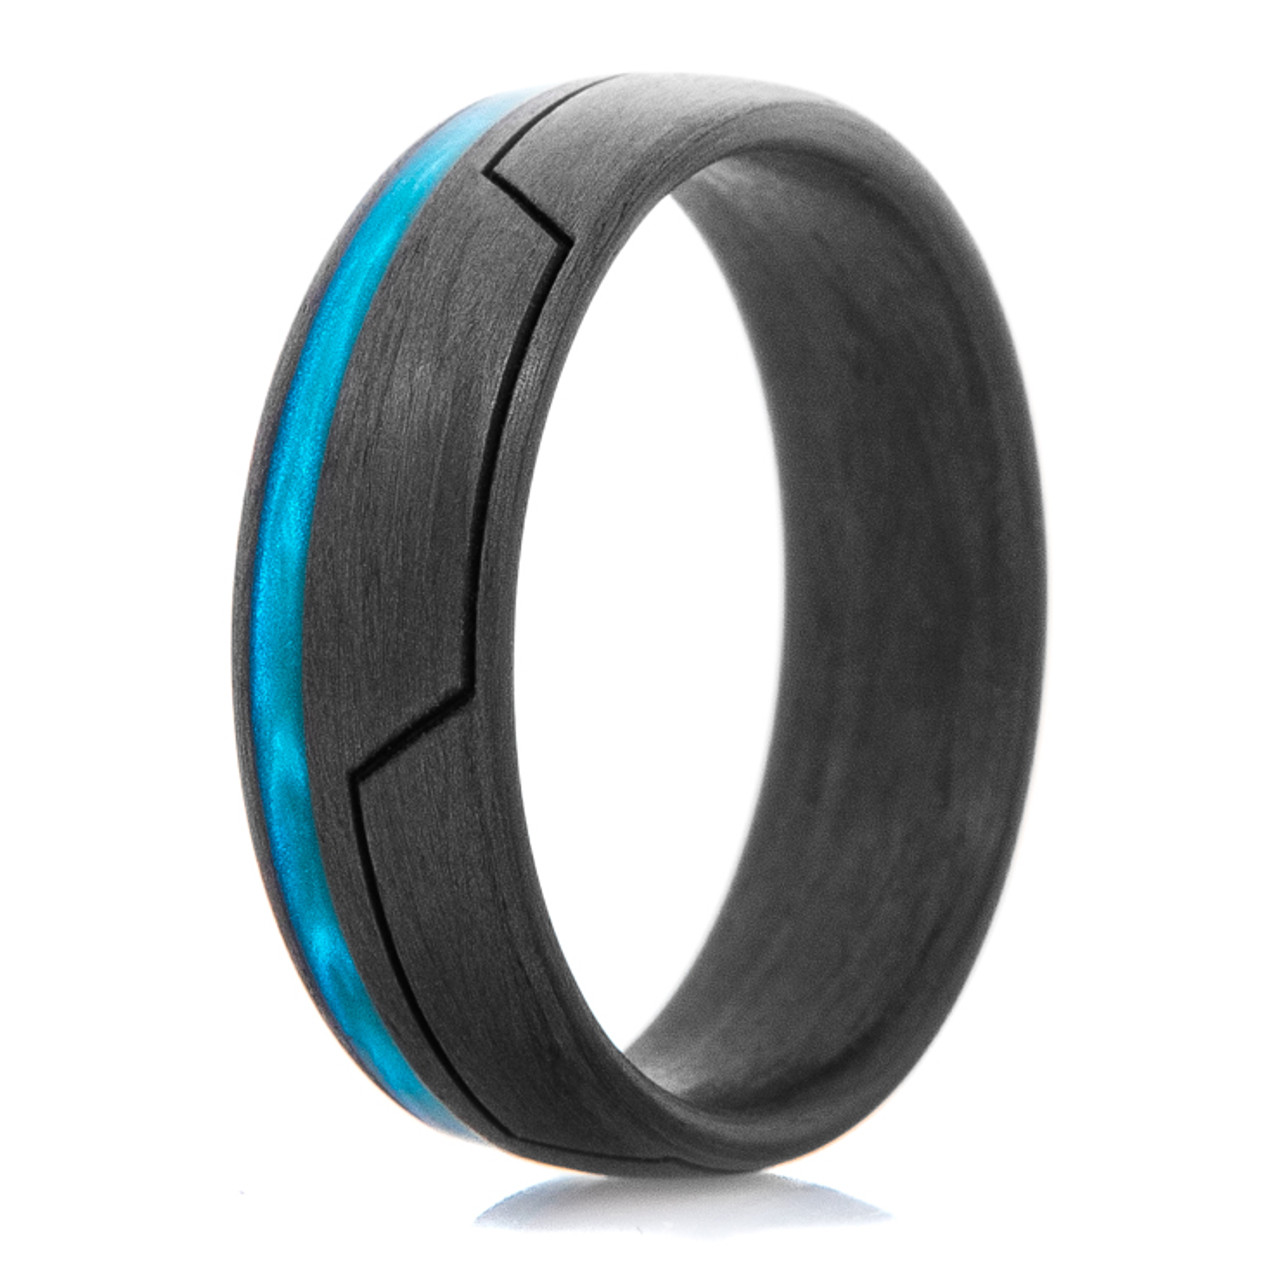 Men S Carbon Fiber Glow In The Dark Ring With Bright Blue